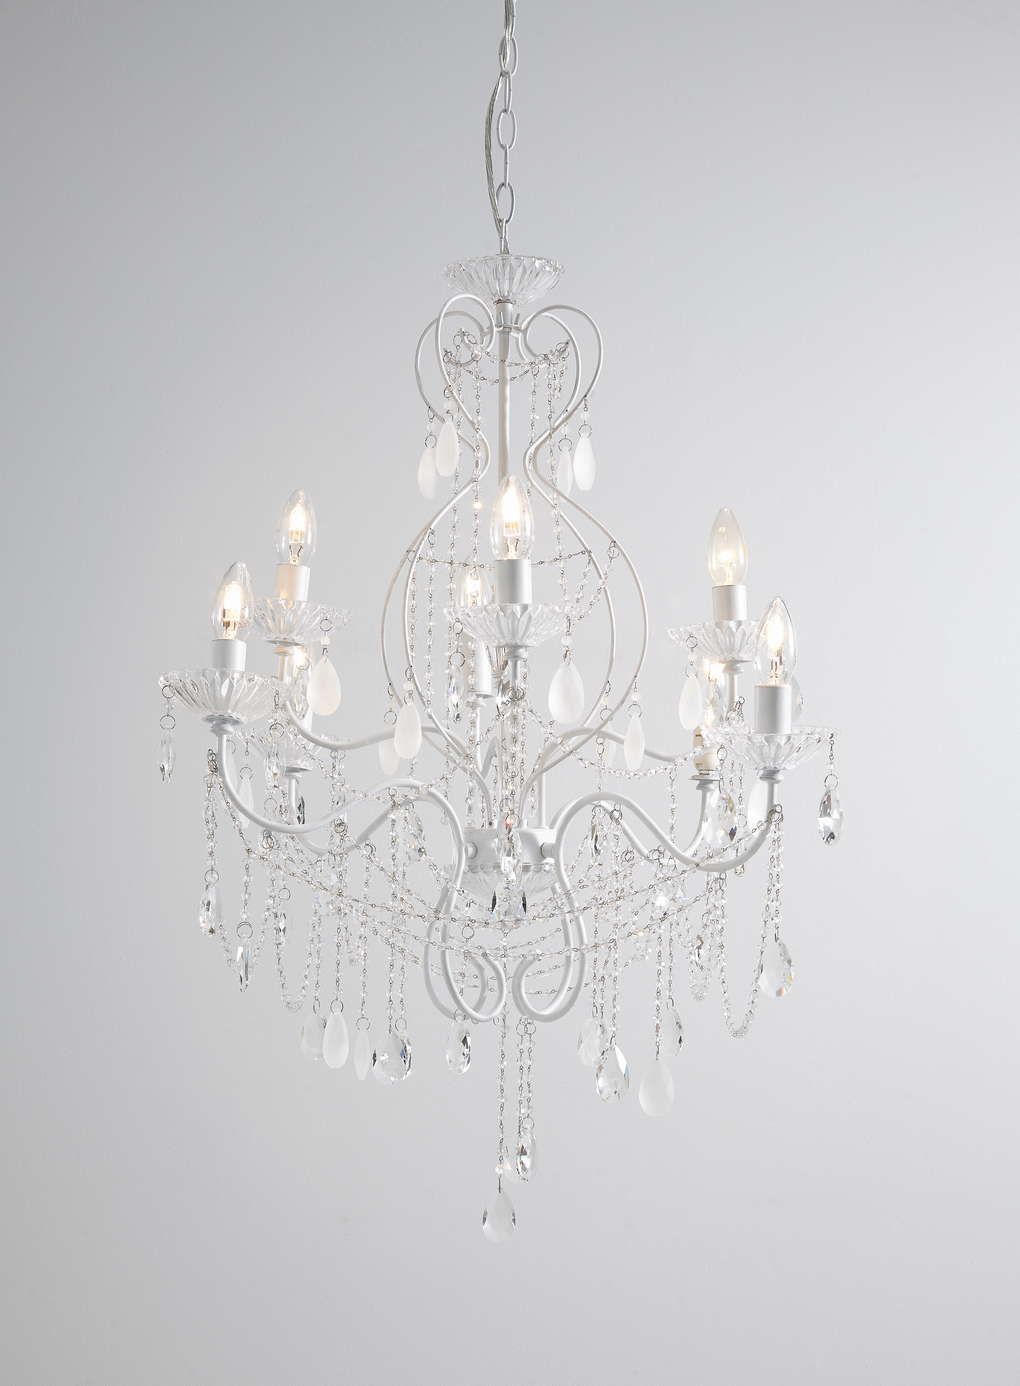 Bathroom Chandeliers Bhs white holly willoughby vintage chandelier - bhs | new salon